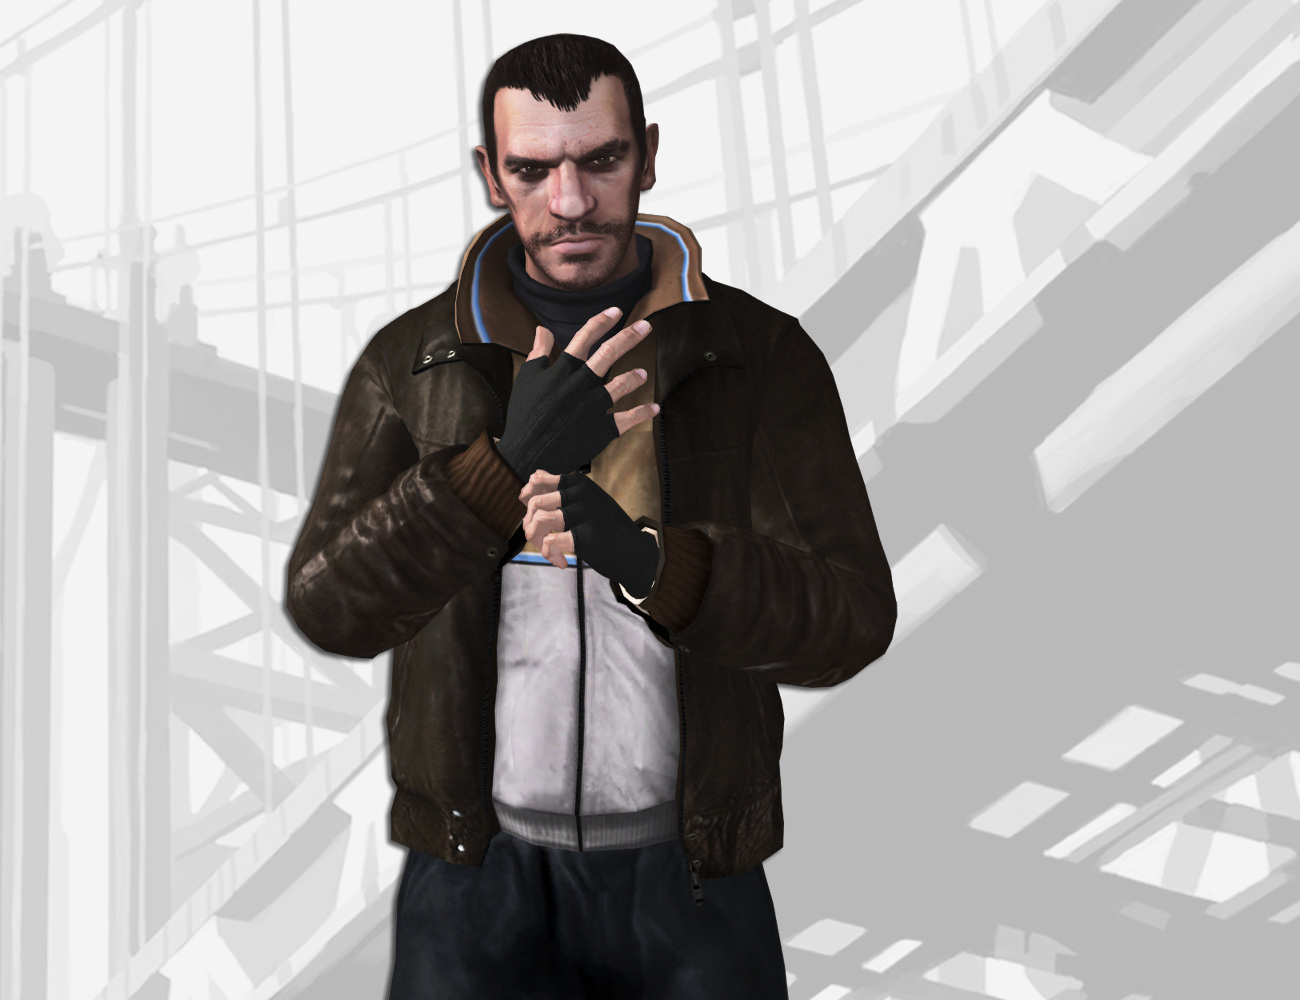 Gta Iv Niko Bellic Artwork In Xps By Voggens On Deviantart